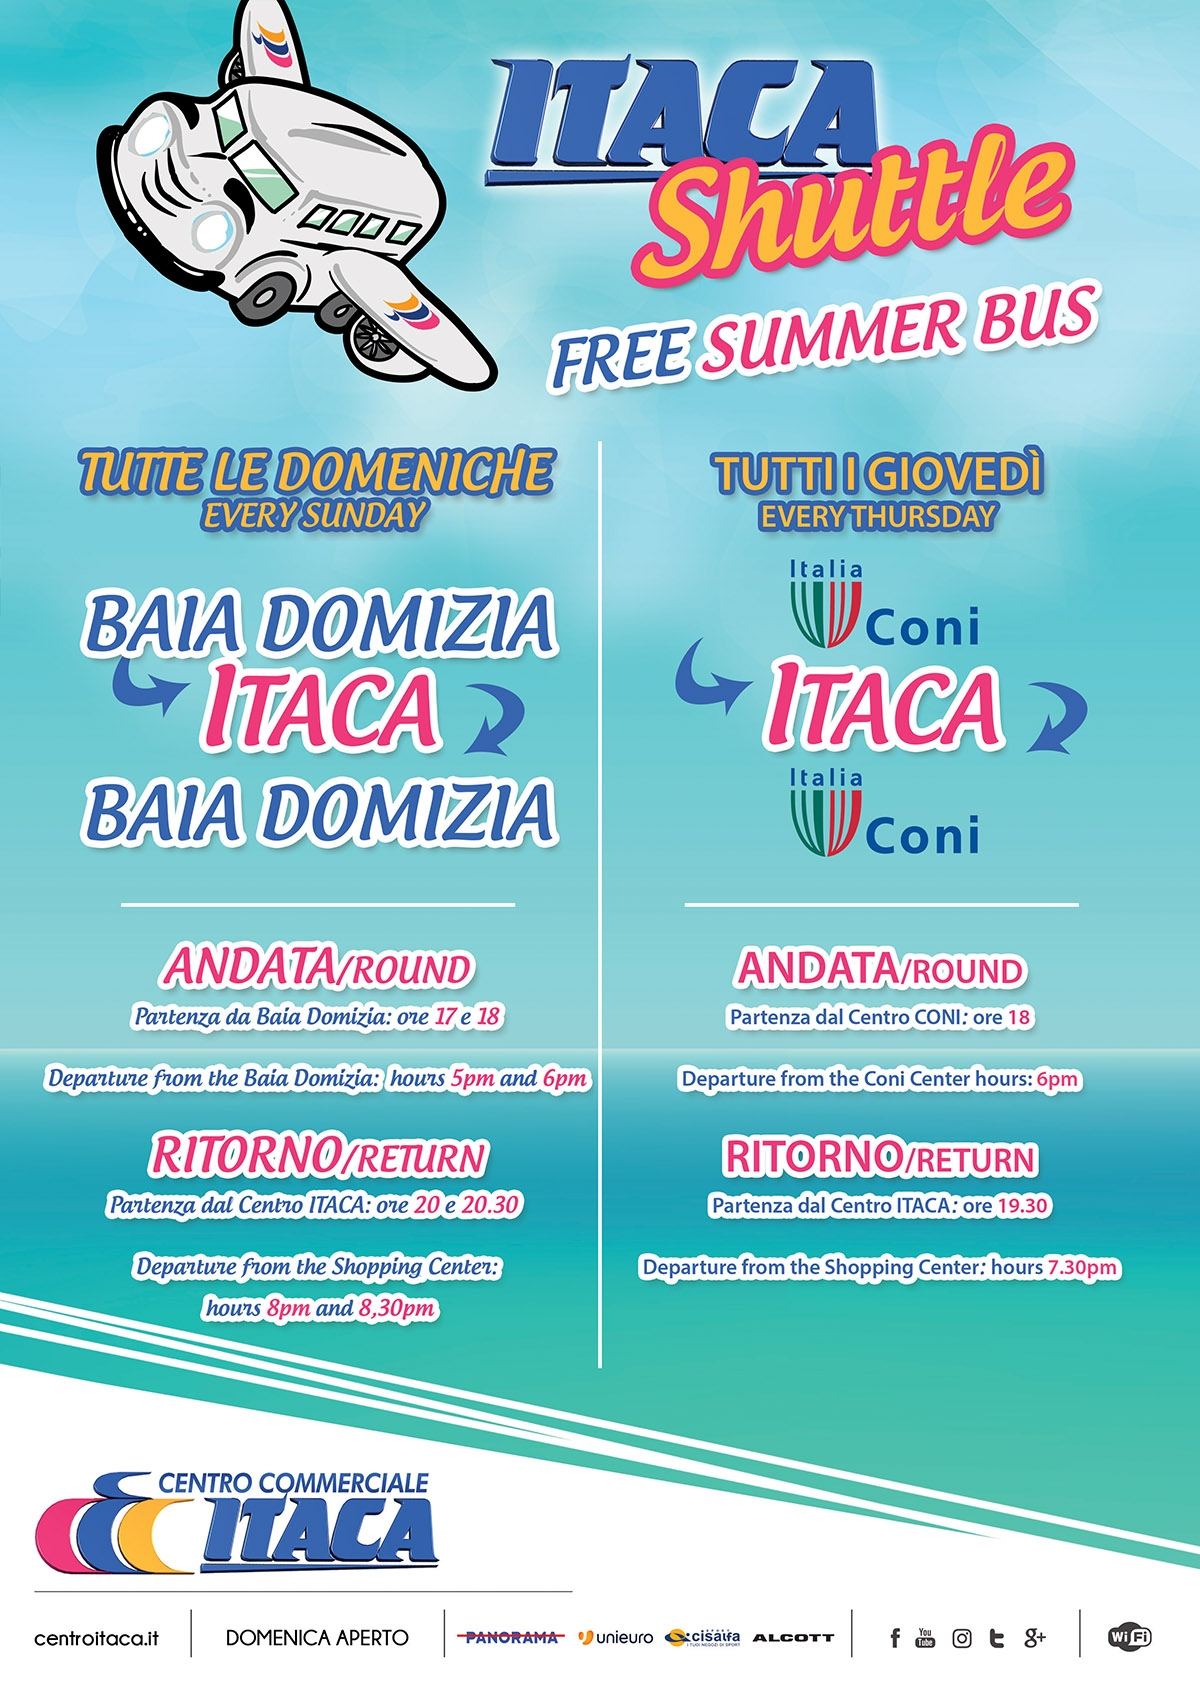 ITACA SHUTTLE - FREE SUMMER BUS